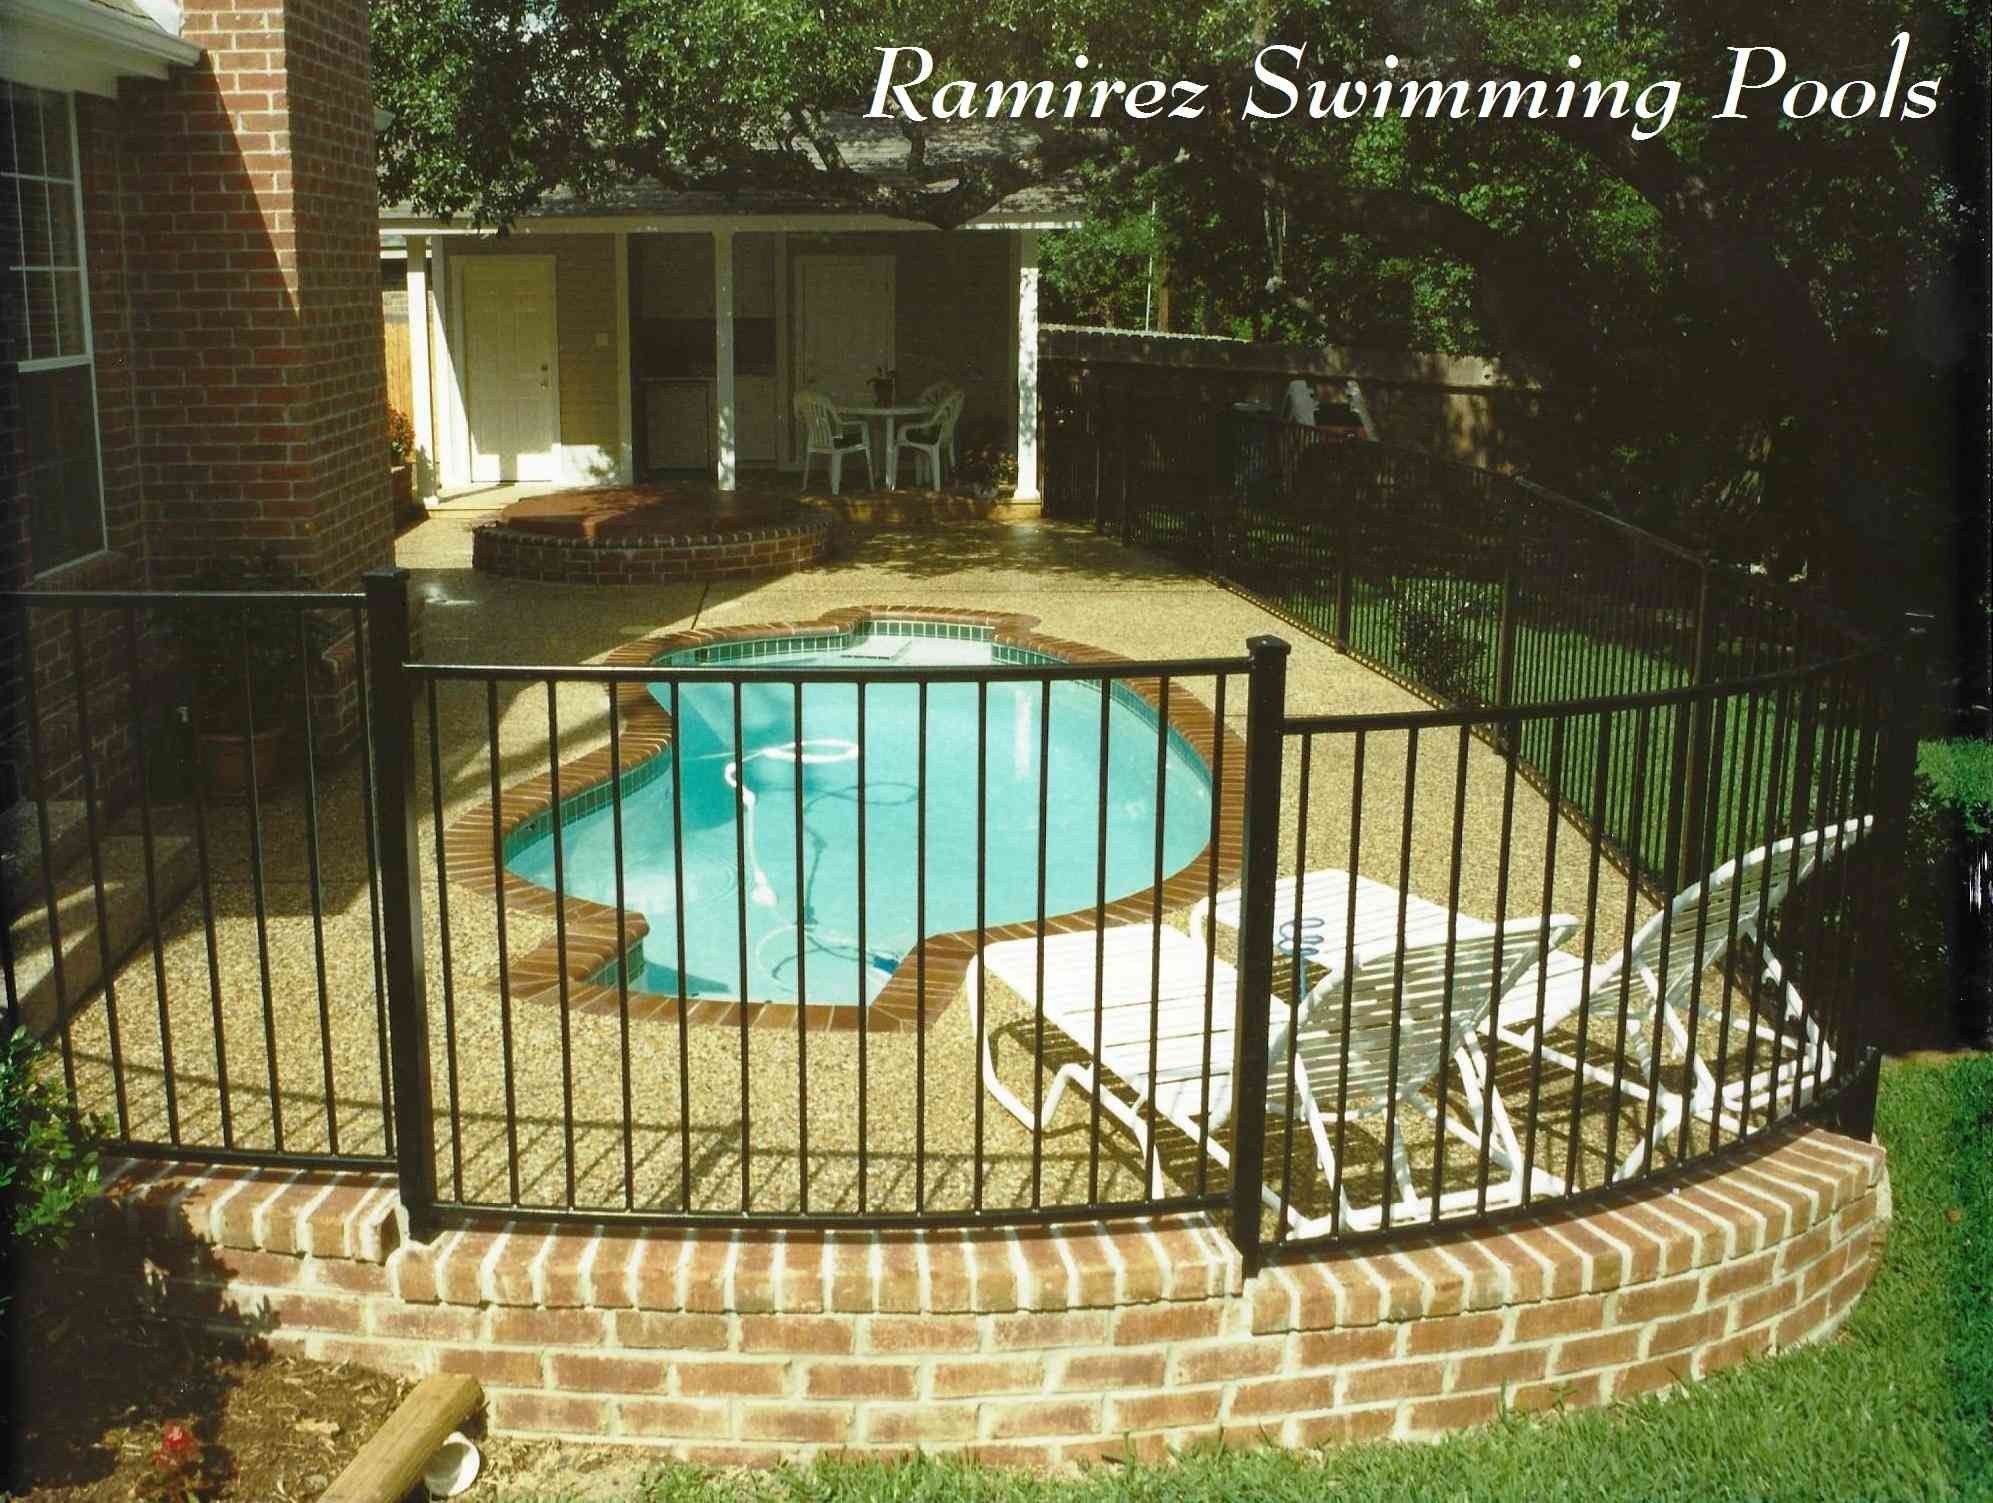 Ramirez Swimming Pools